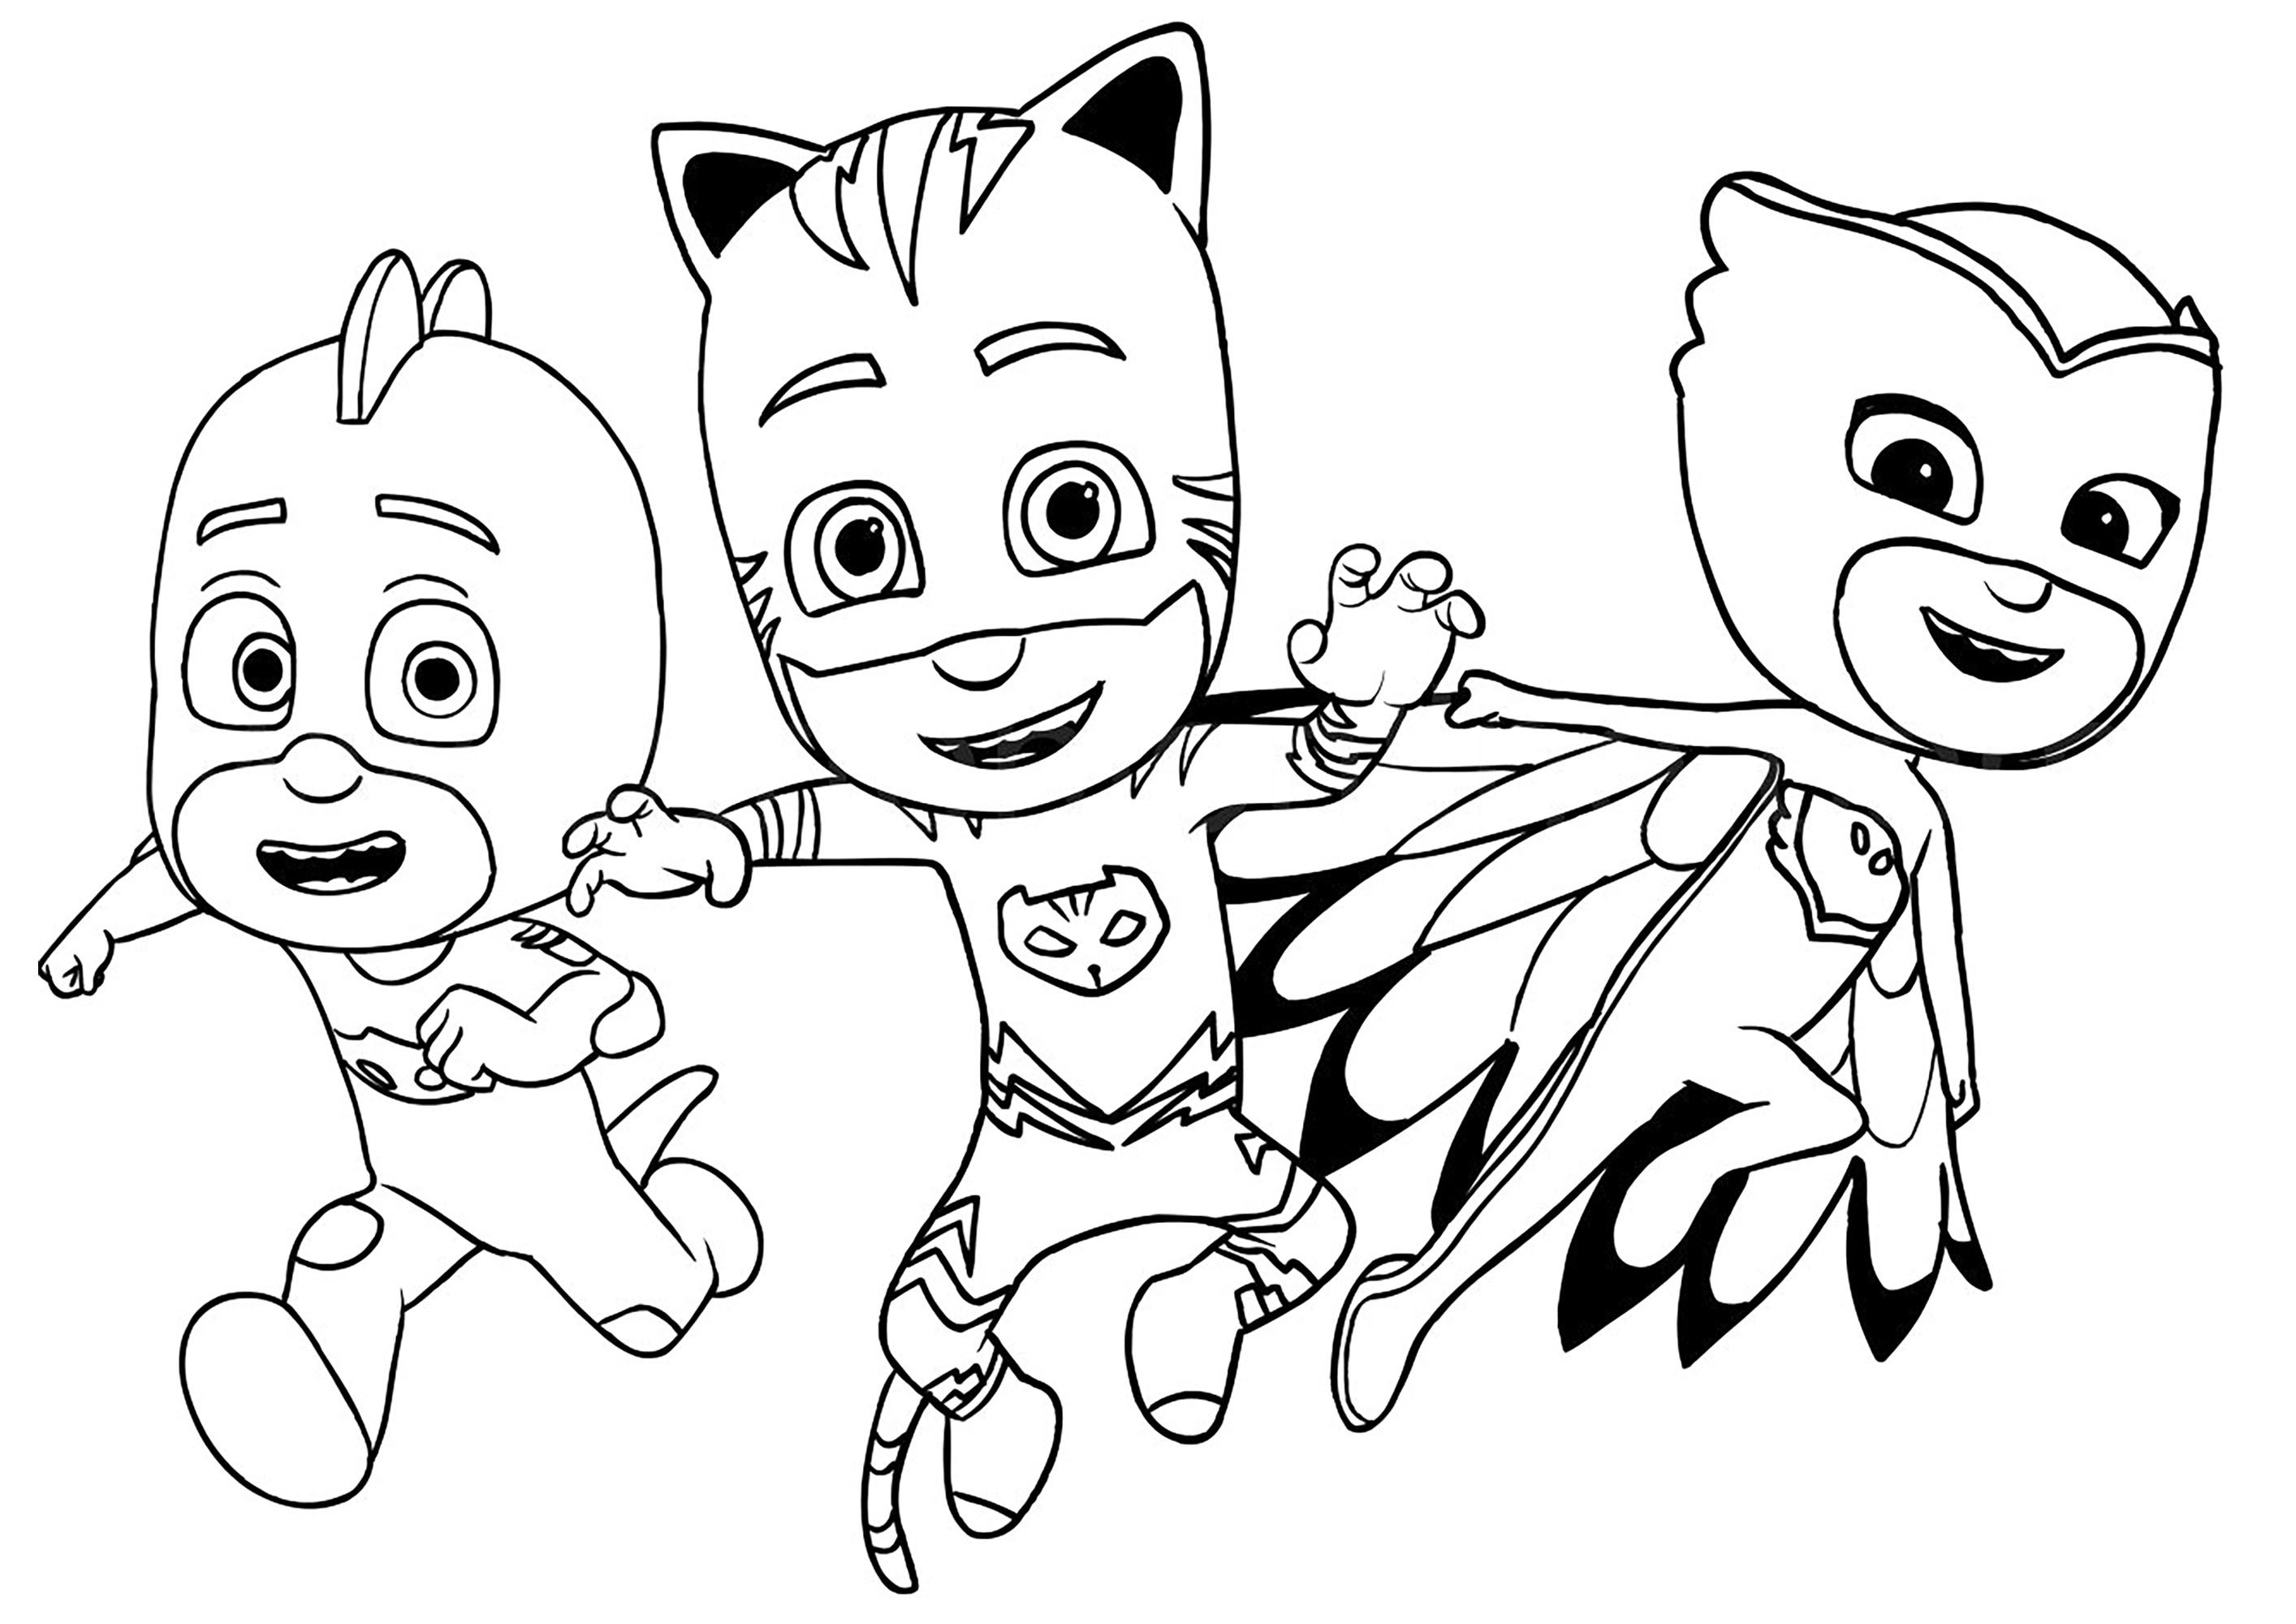 Collection Of Pj Masks Coloring Pages Idea Pj Masks Coloring